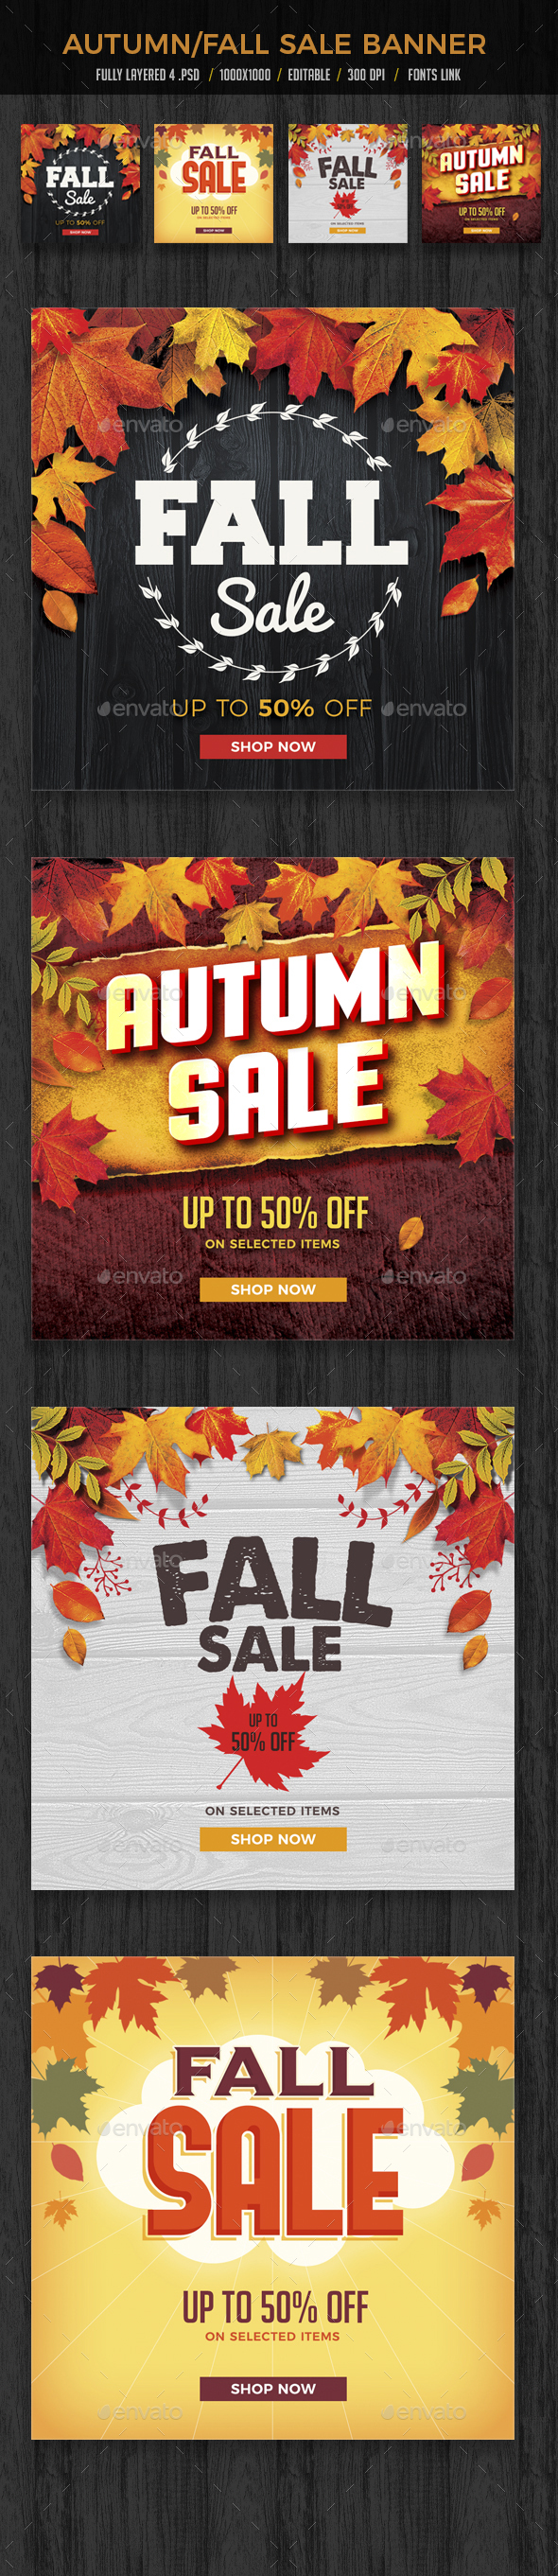 Autumn Fall Sale Banners Set 2 - Banners & Ads Web Elements